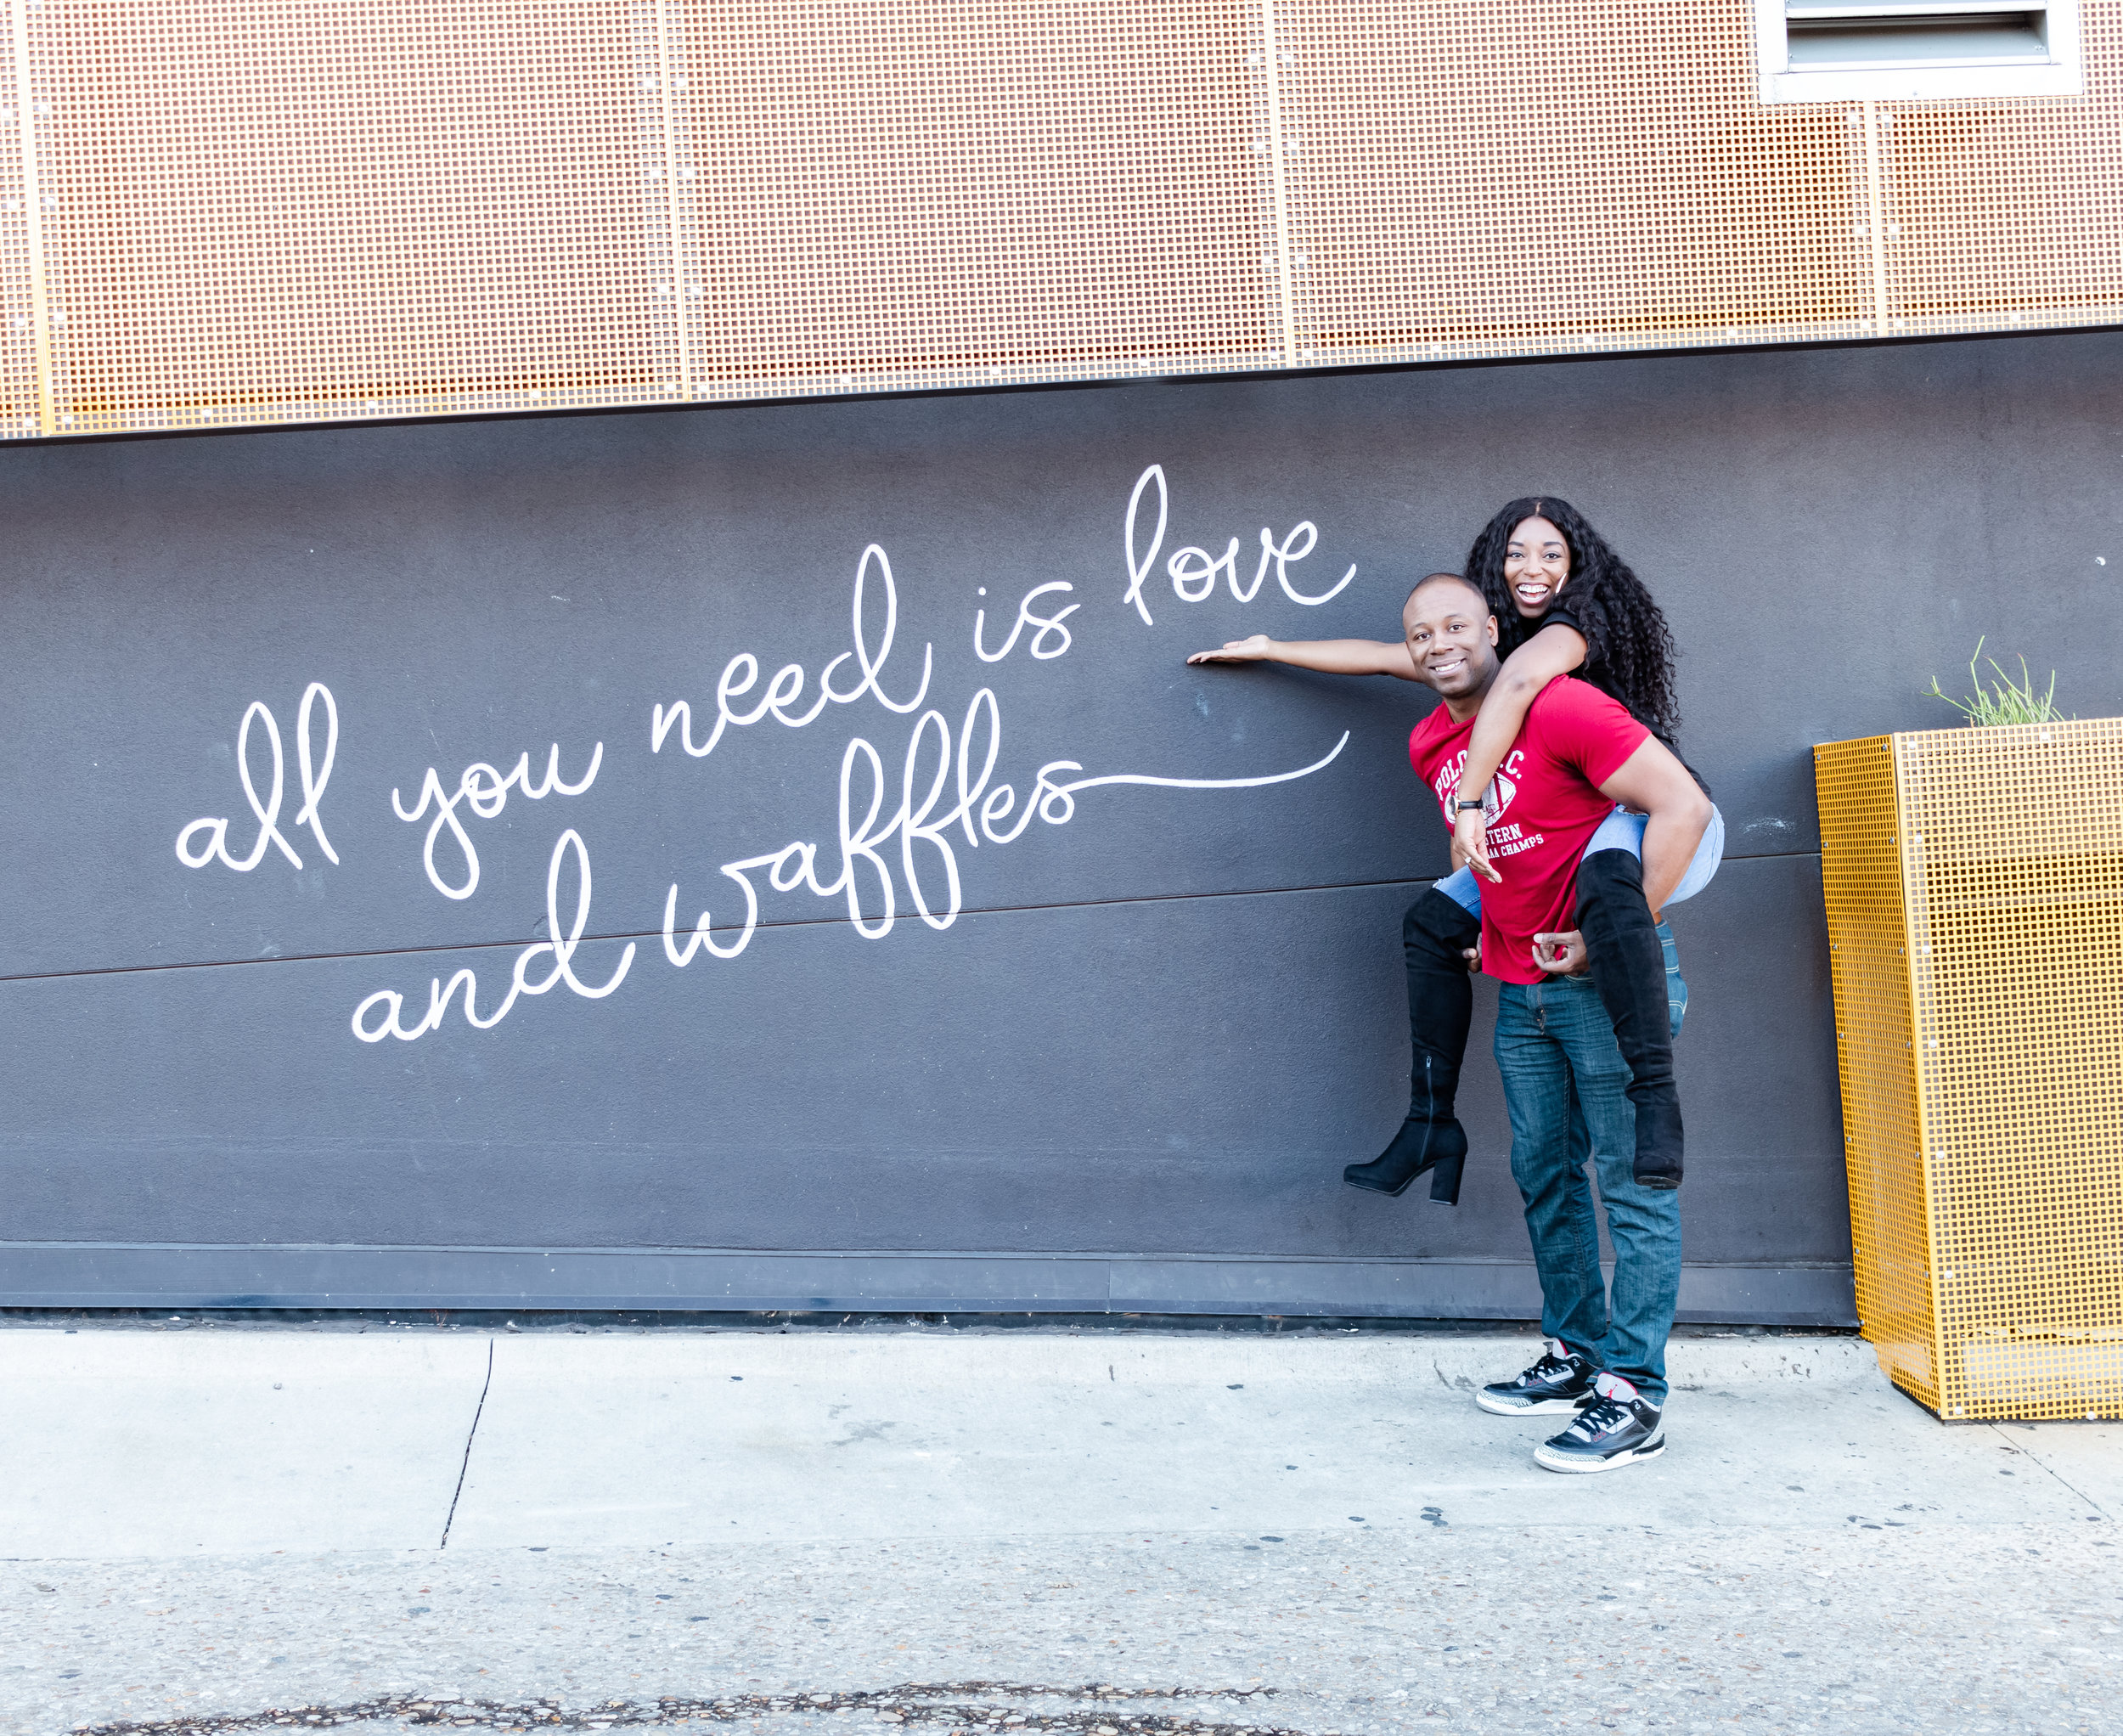 waffle-champion-great-murals-in-oklahoma-city-couples-love-waffle